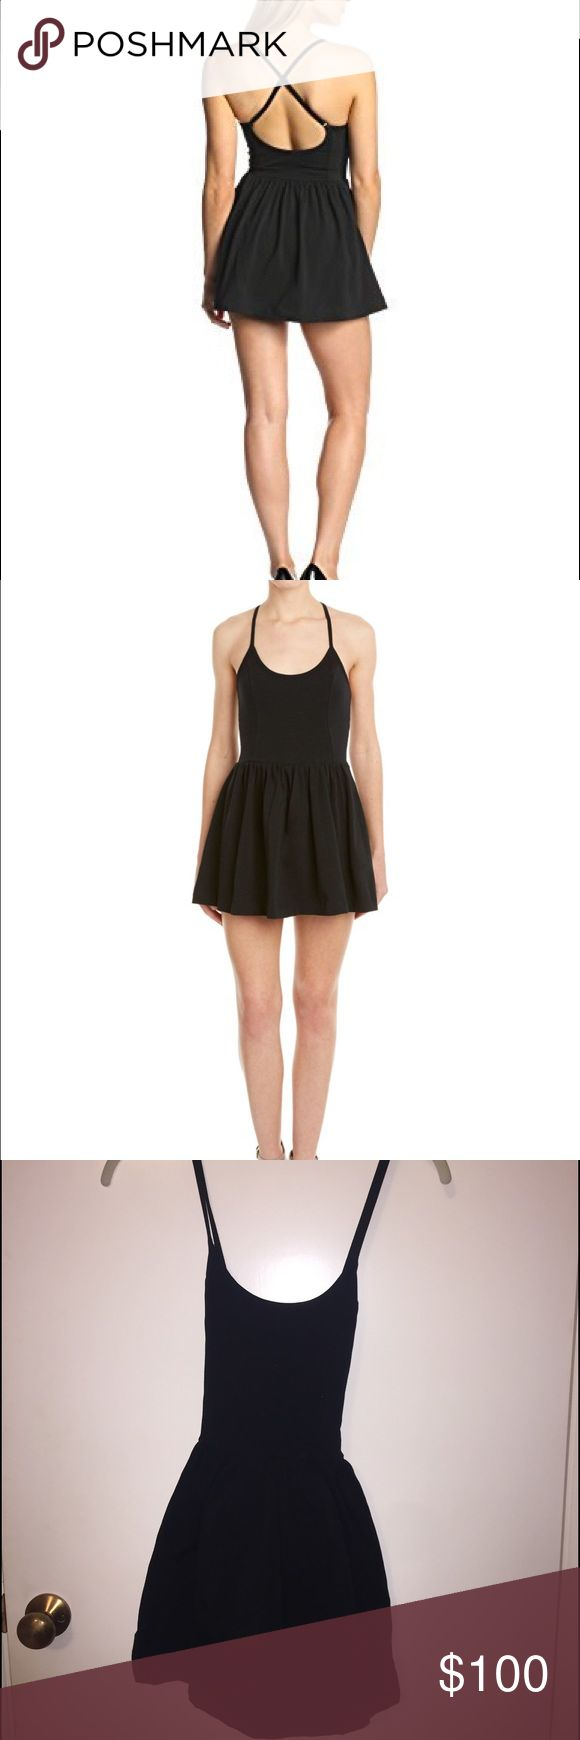 French Connection Marina Plains Skirted Romper This adorable romper looks like a dress with the over skirt and has a cross back with adjustable straps. It's very stretchy and comfortable and new with tags. French Connection Dresses Mini